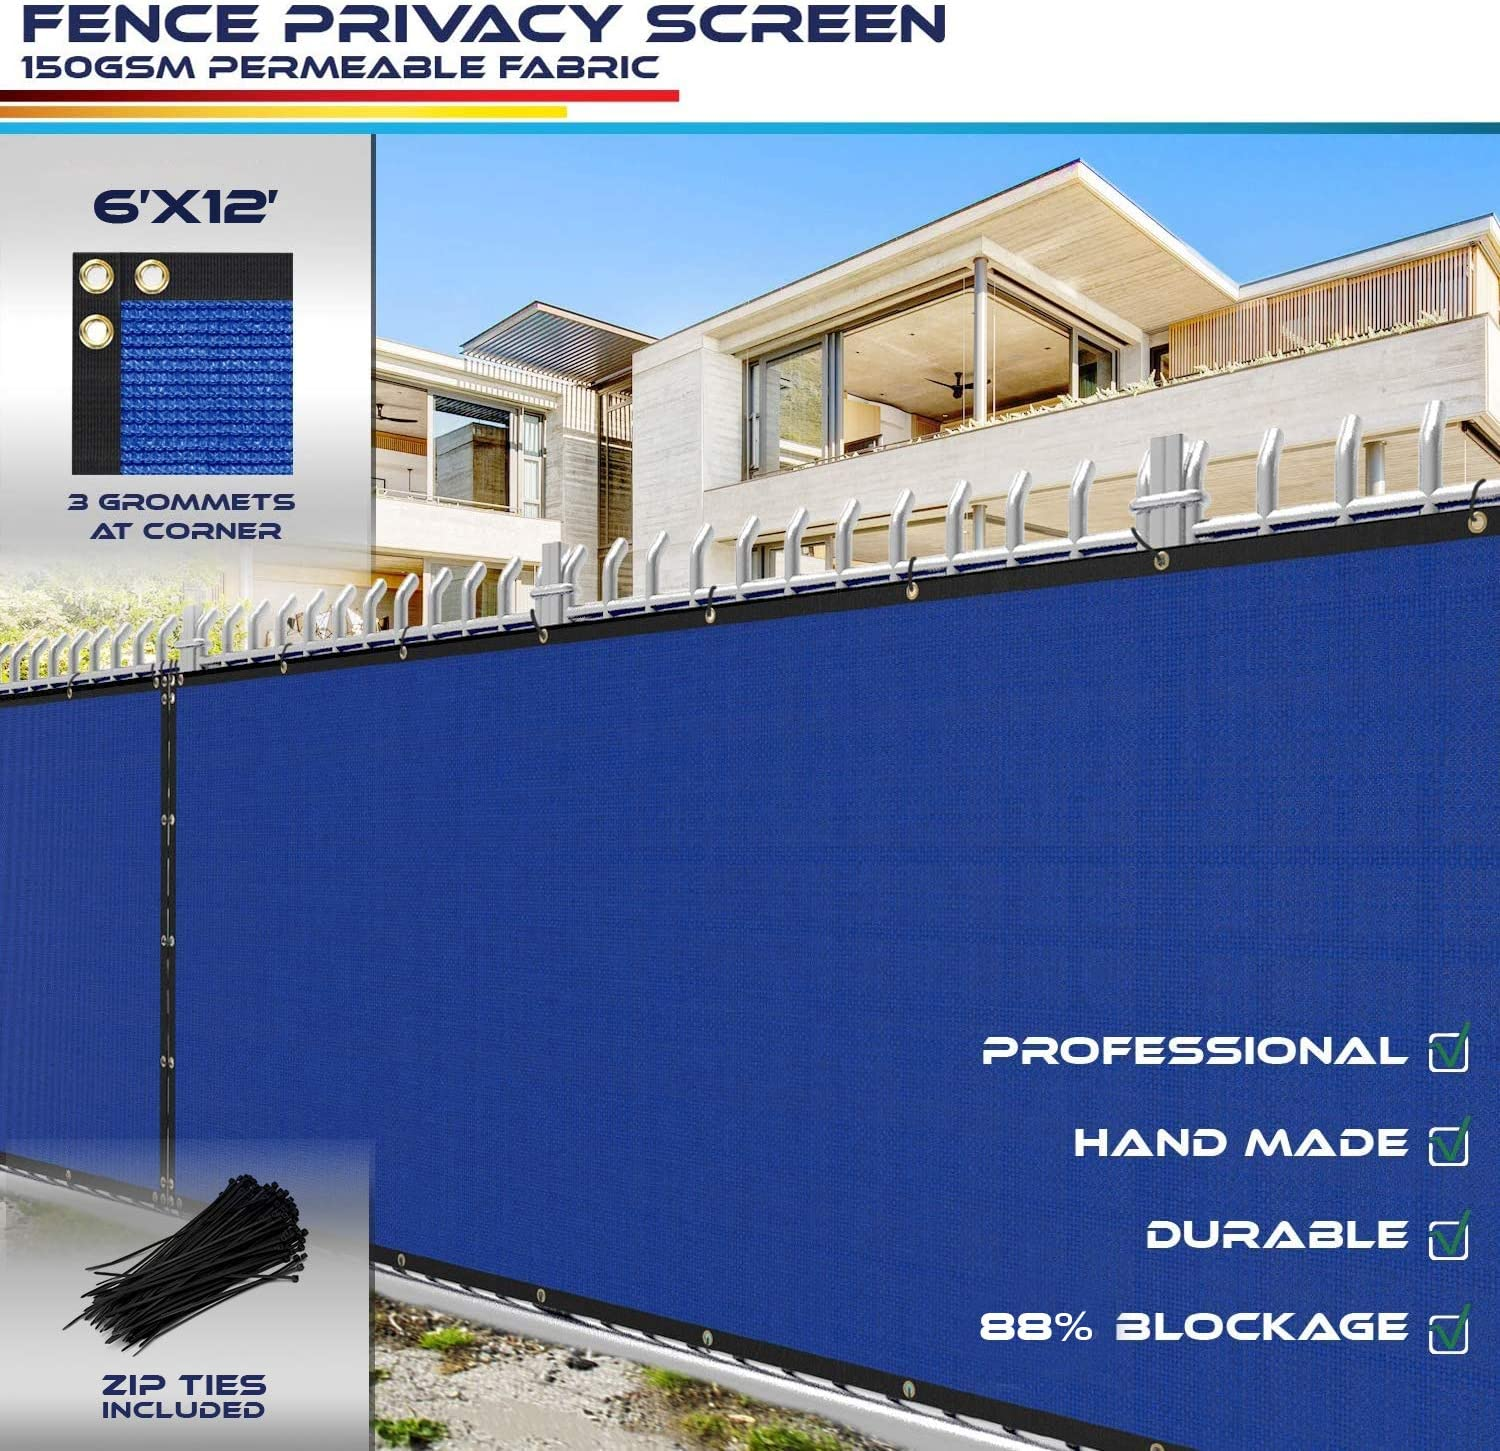 6' x 12' Privacy Fence Screen Blue with Chain Tucson Mall for in Outlet ☆ Free Shipping Link